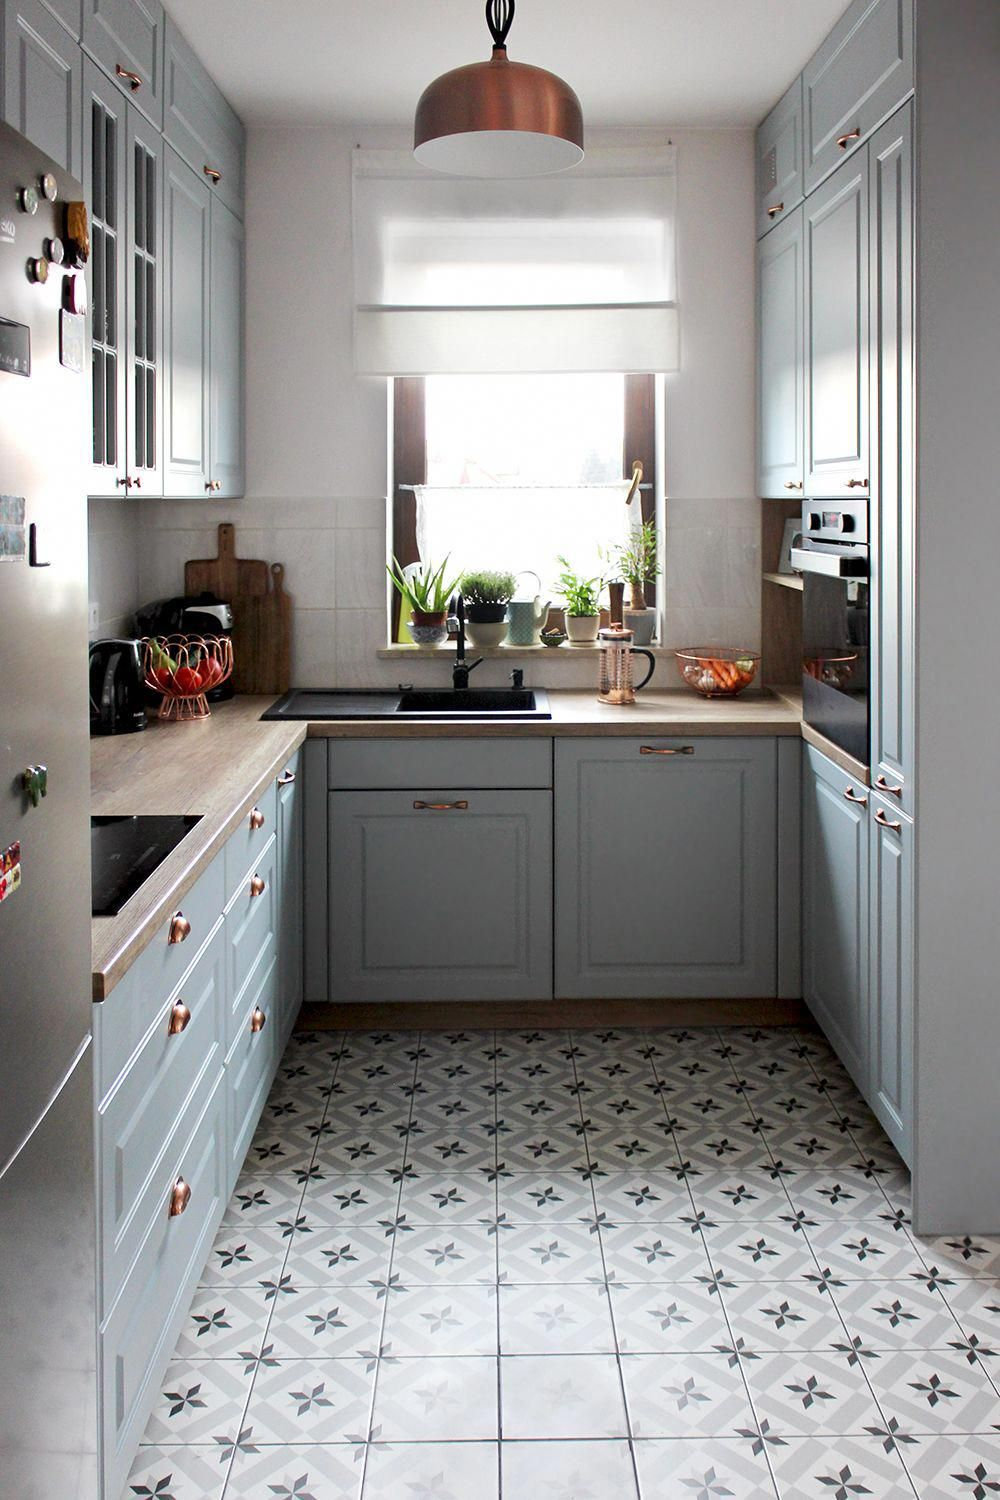 Timeless Kitchen Cabinet Colors From Shining Whites And Peaceful Grays To Honey Toned Or Abundant Dar Tiny House Kitchen Home Kitchens Kitchen Remodel Small